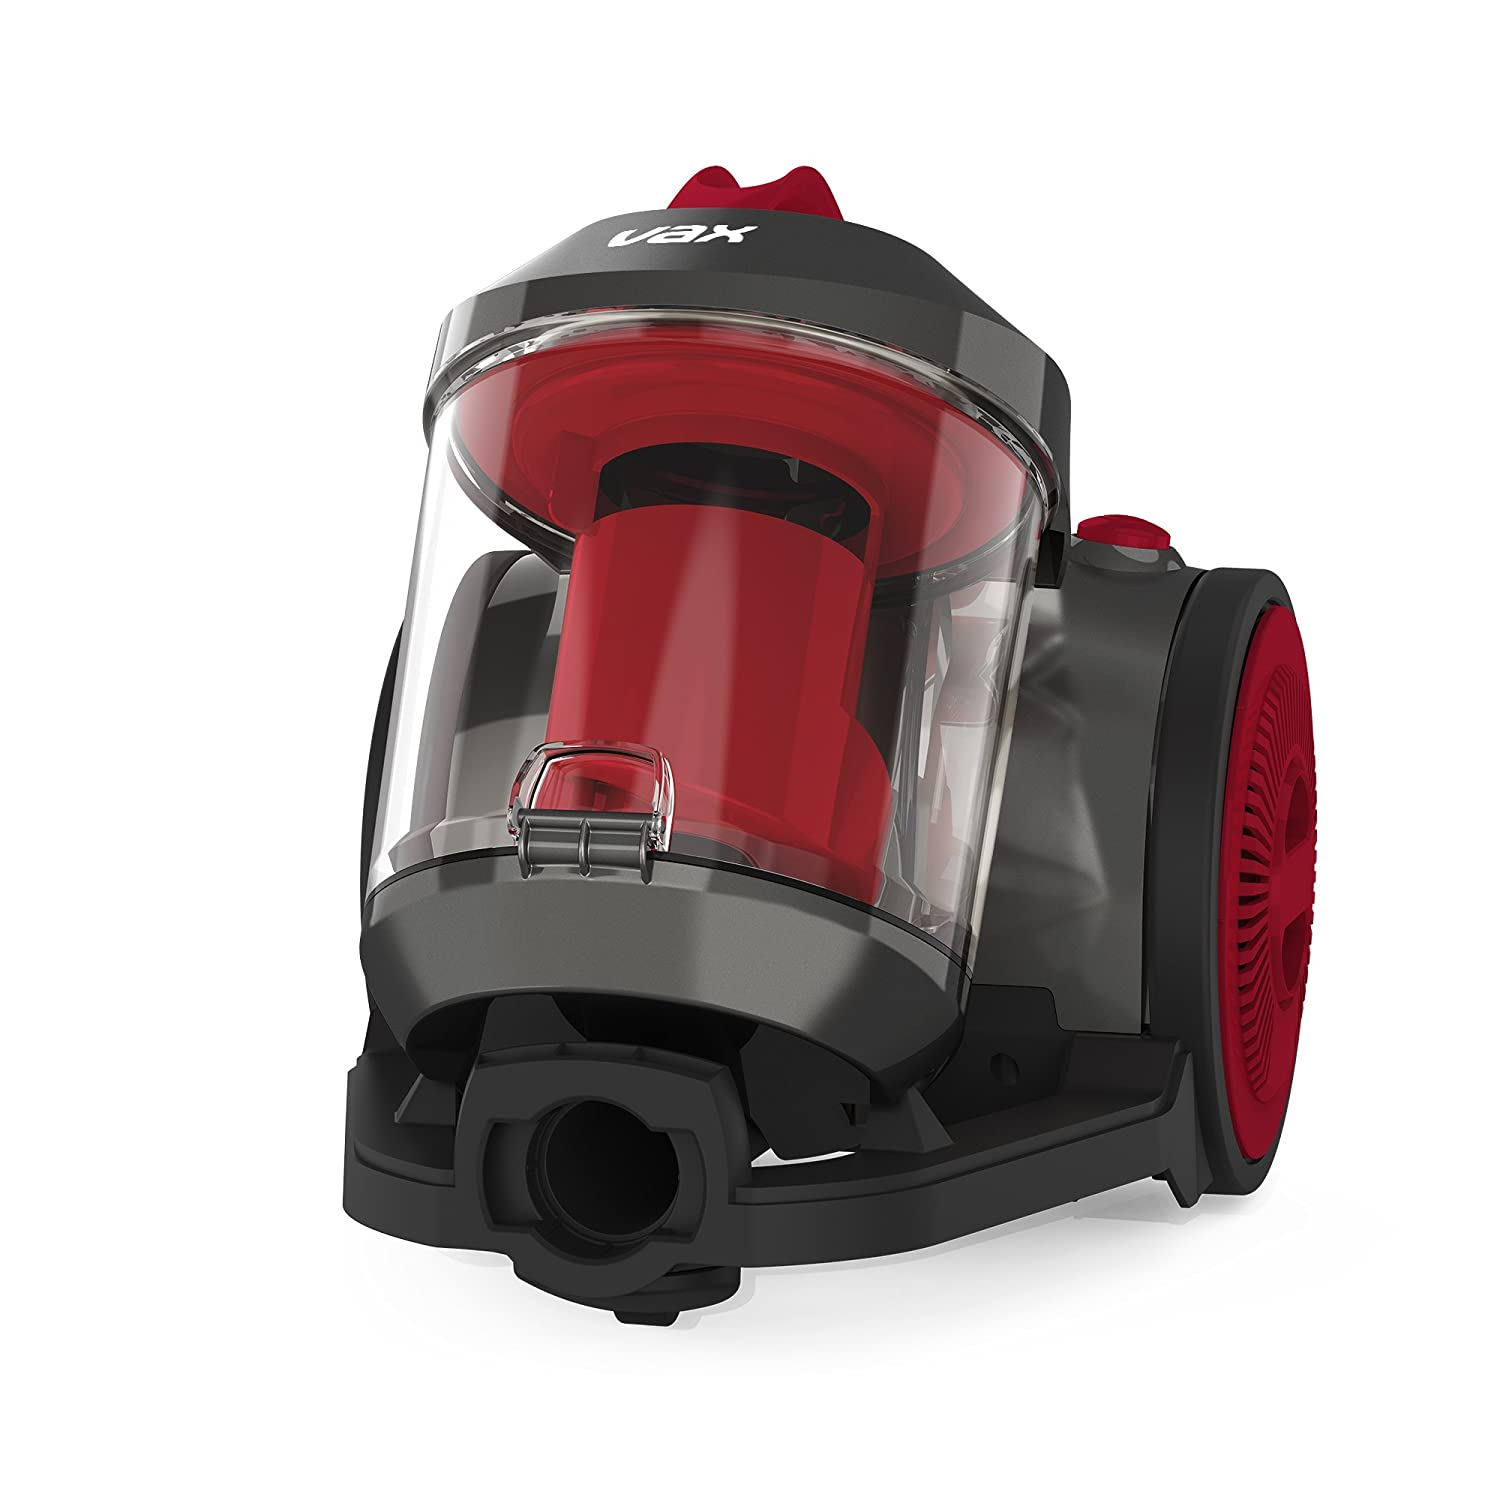 Vax CCMBPCV1T1 Power Compact Total Home Vacuum Cleaner, 2.2 Litre, 800 W, Red [Energy Class A] Vax LTD